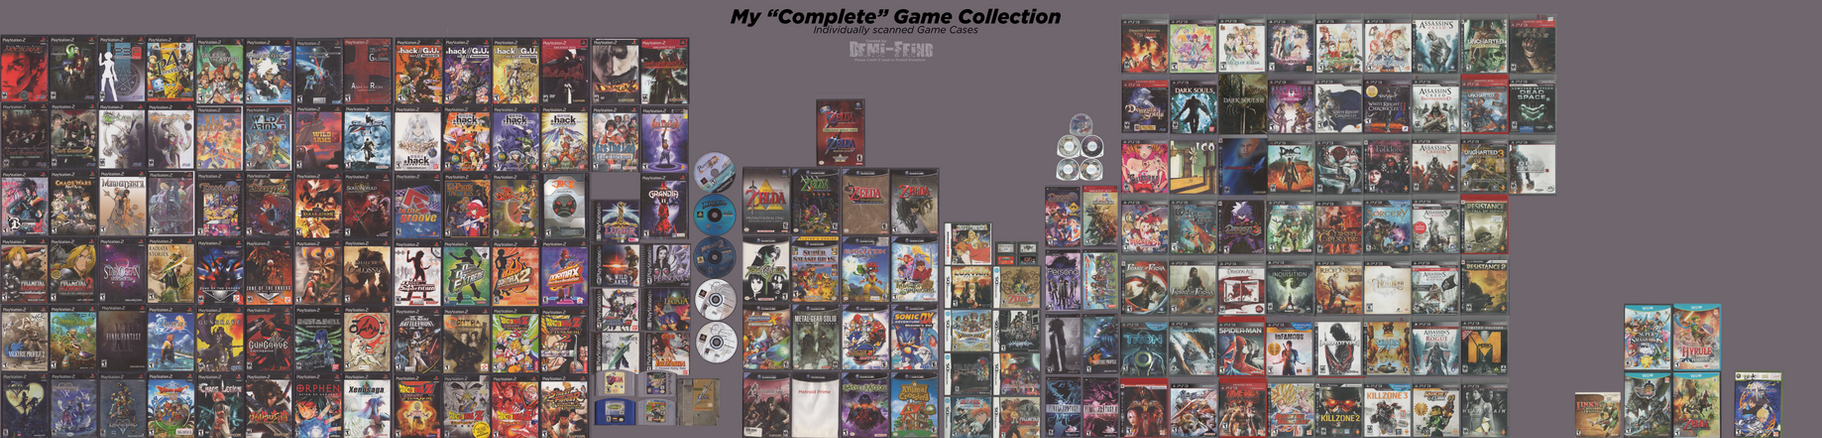 My ''Complete'' Game Collection by Demi-feind